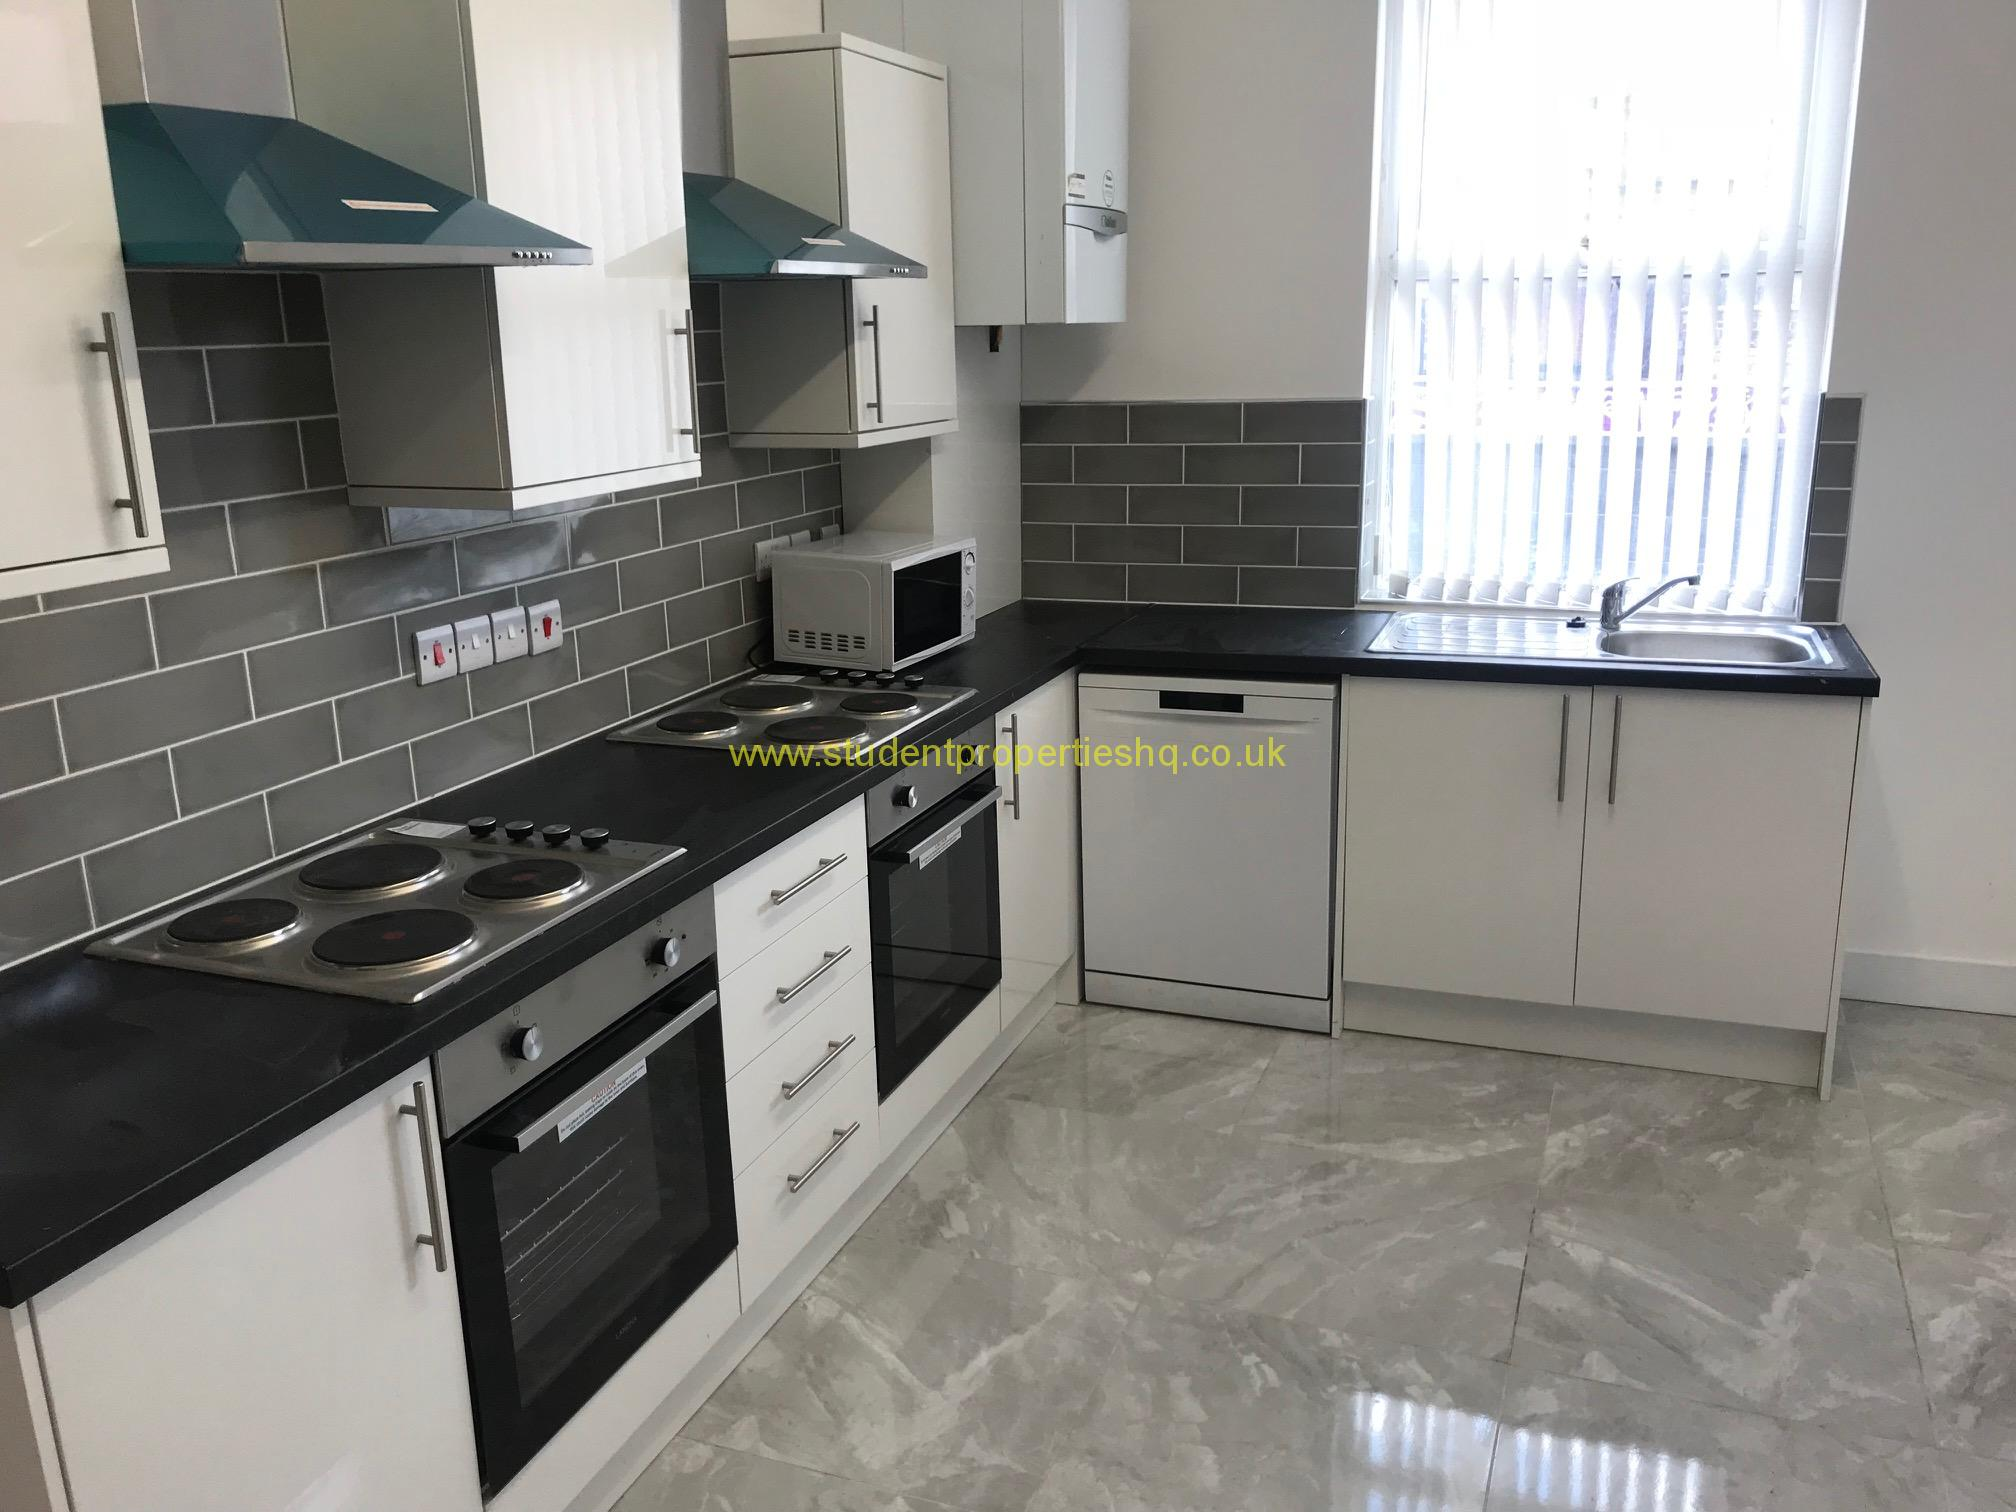 Brudenell Road, Hyde Park, LS6 1BD